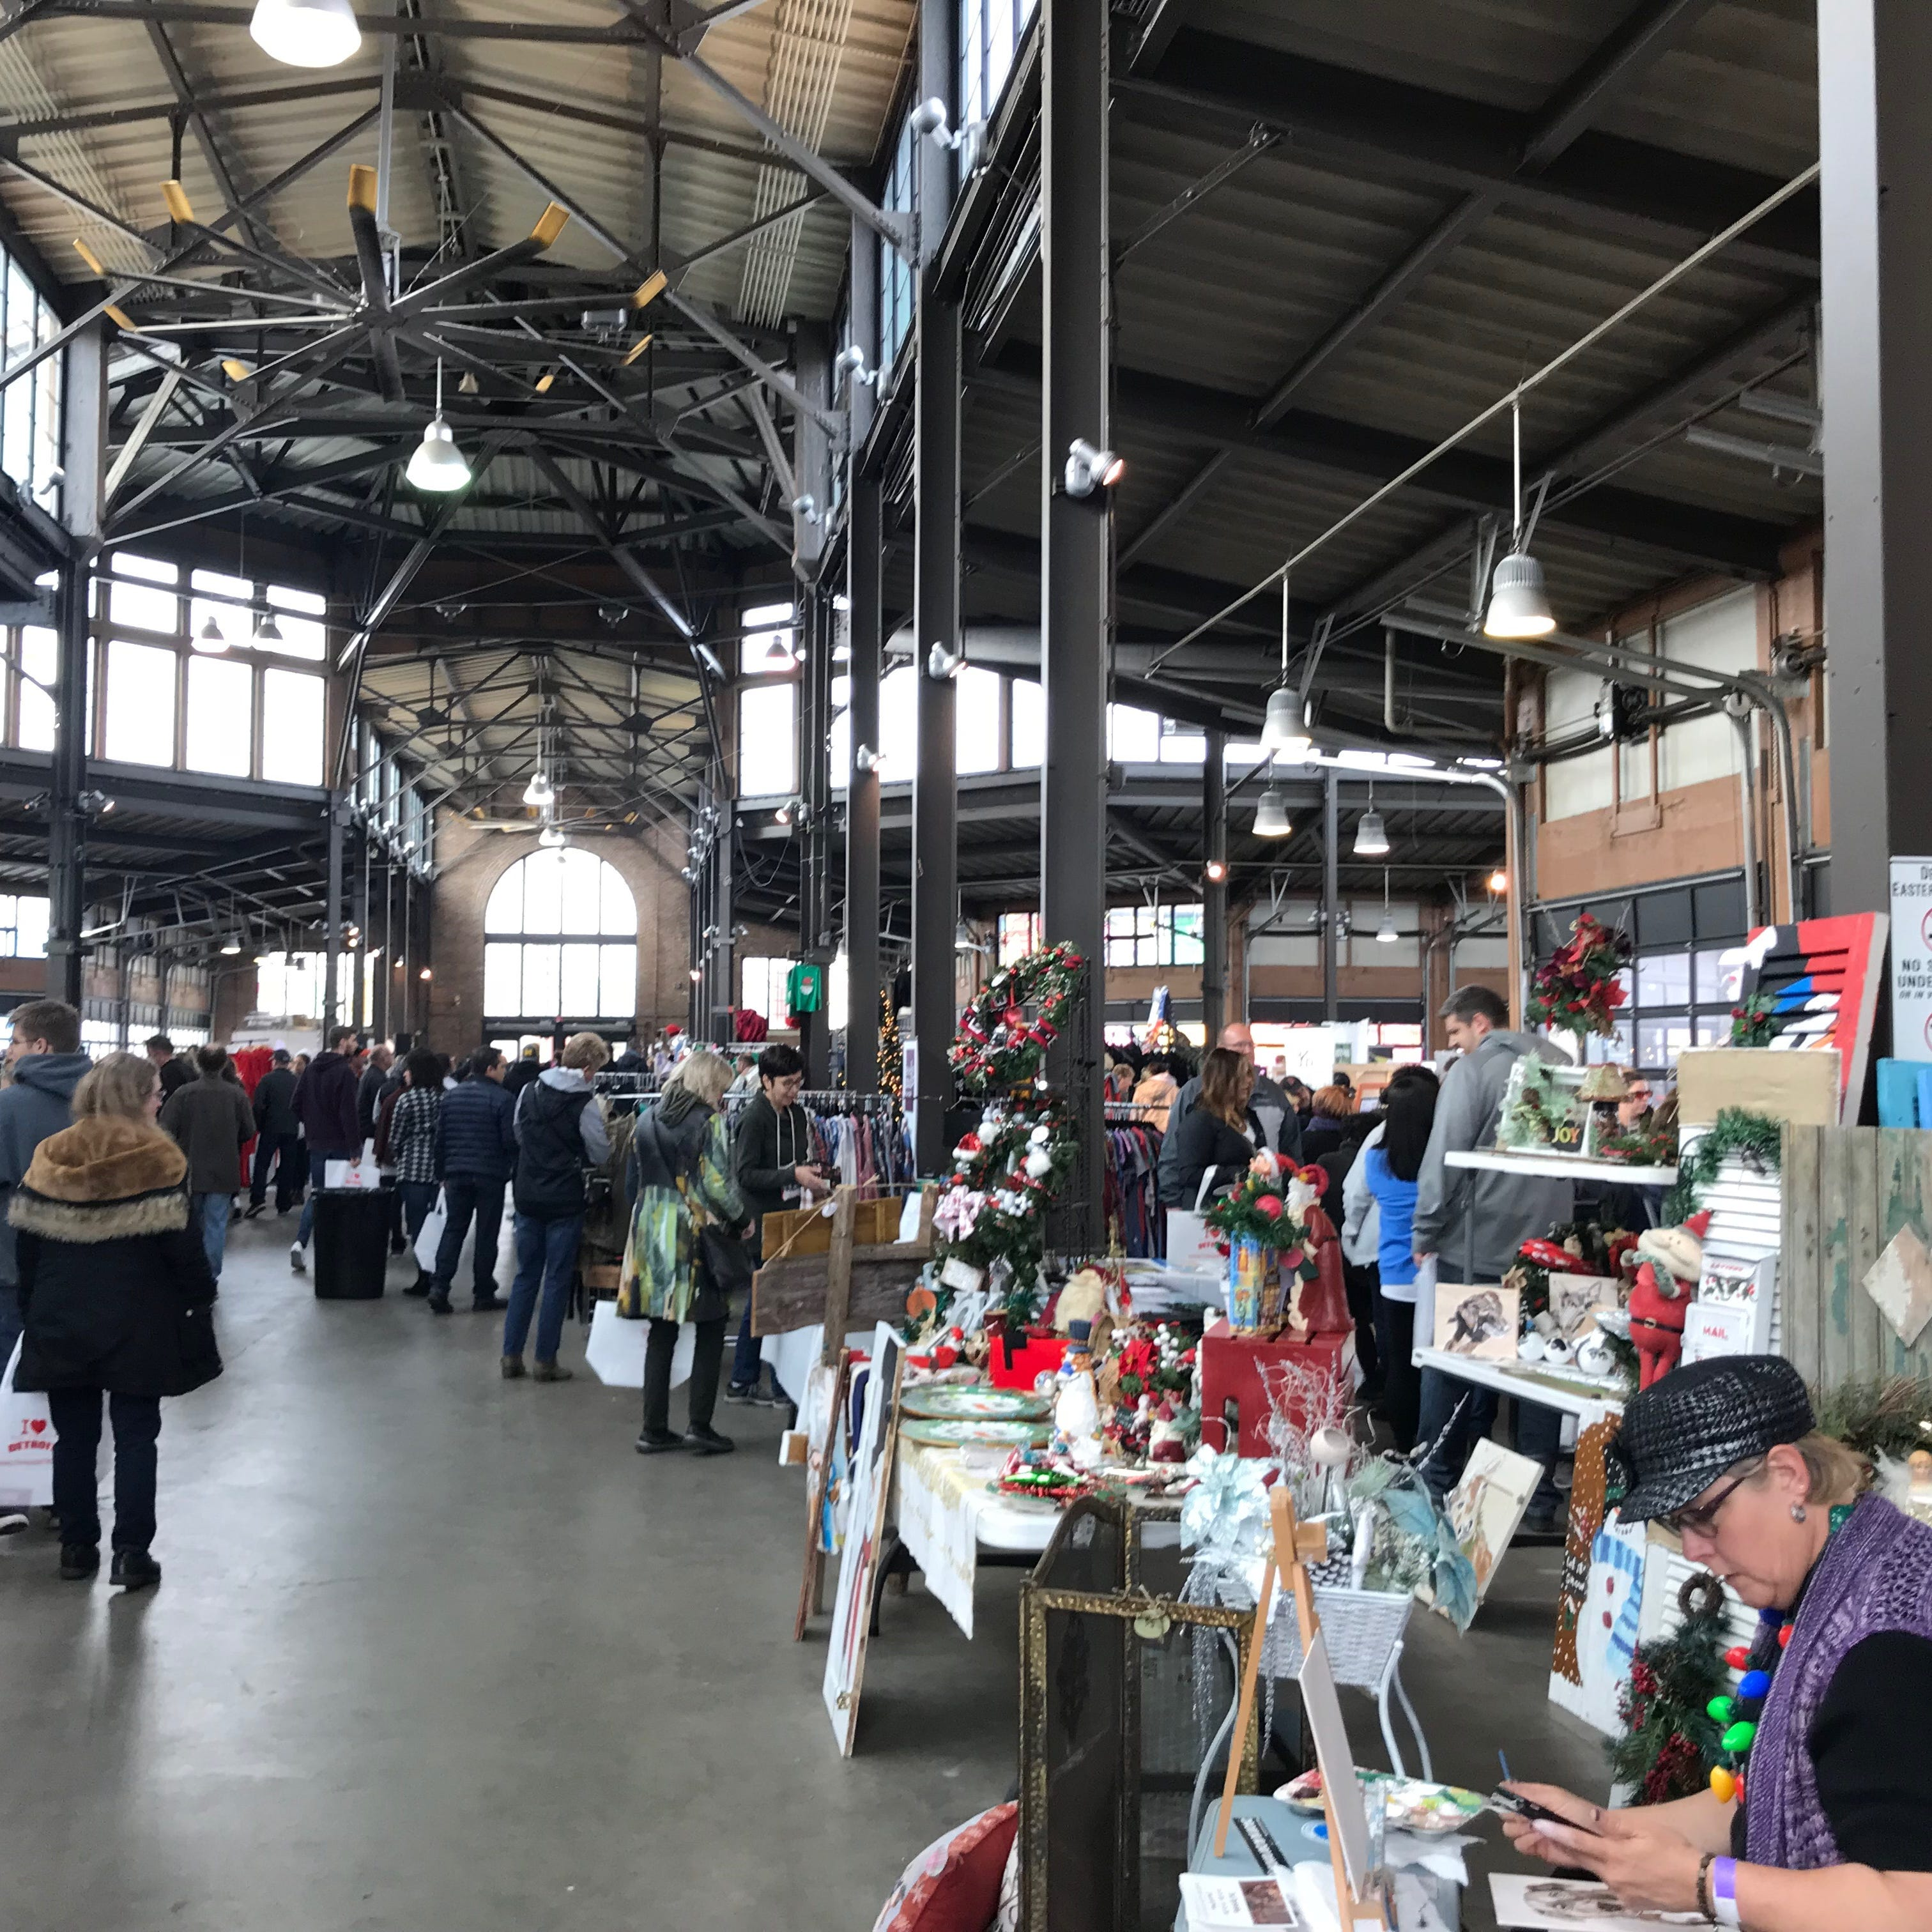 Detroit small businesses, entrepreneurs star of Eastern Market show